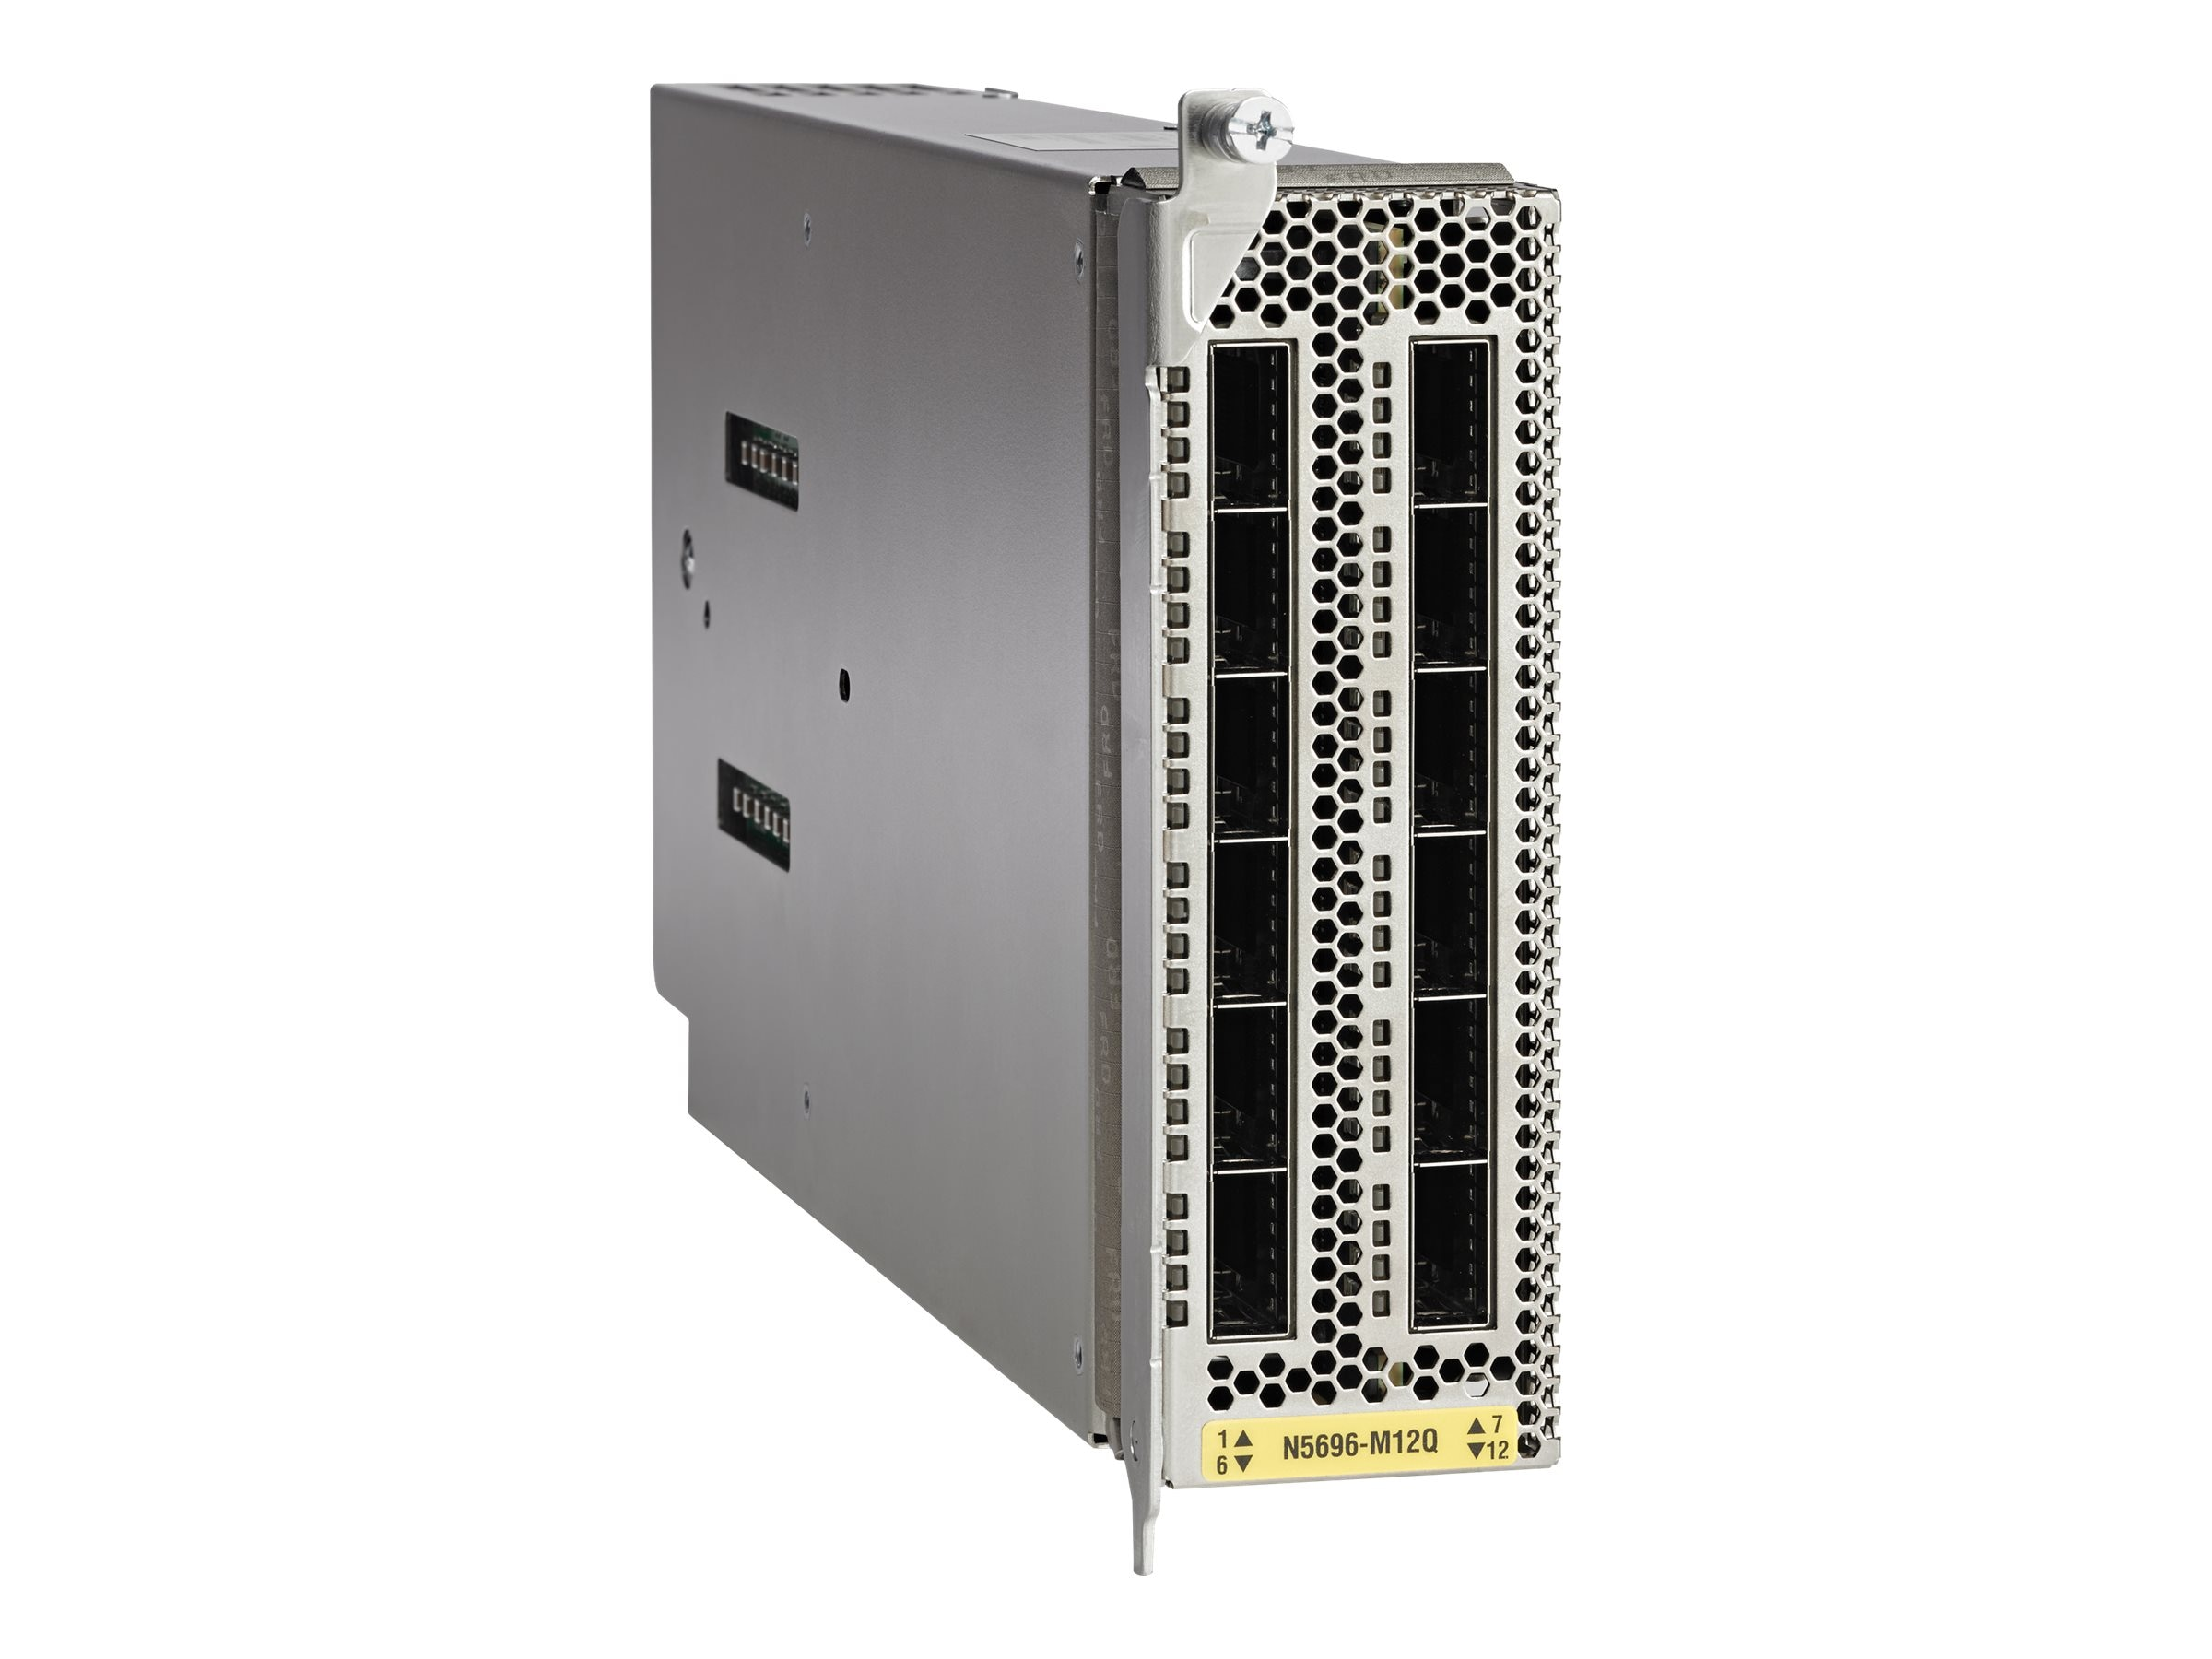 Cisco N5600-M12Q Image 1